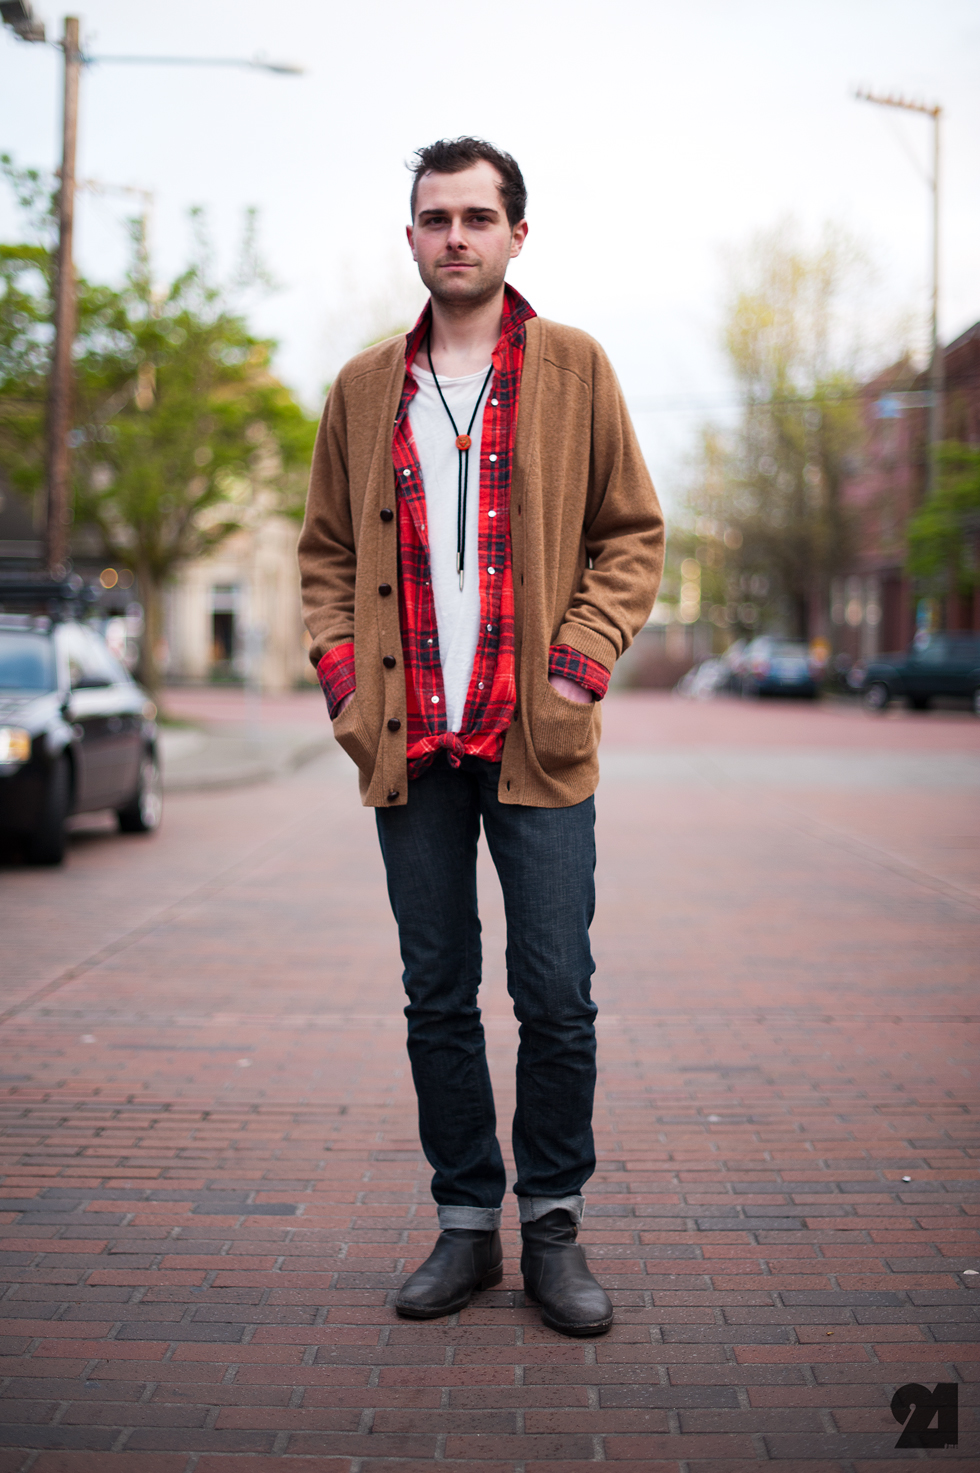 Hipster Tumblr Guys | Shopping Guide. We Are Number One ...Hipster Fashion Tumblr